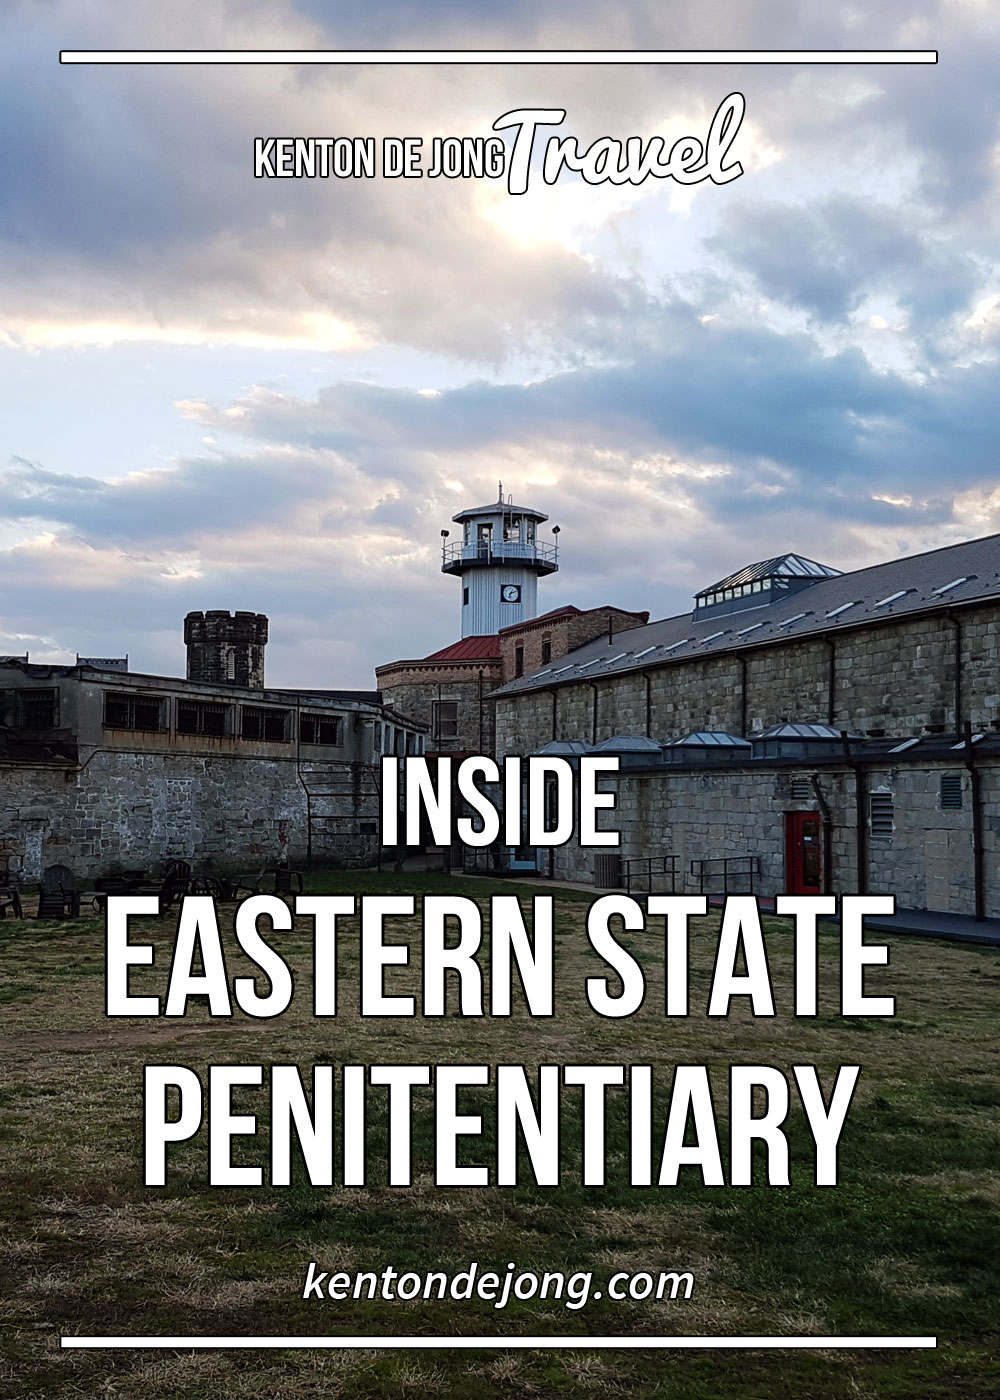 Inside Eastern State Penitentiary